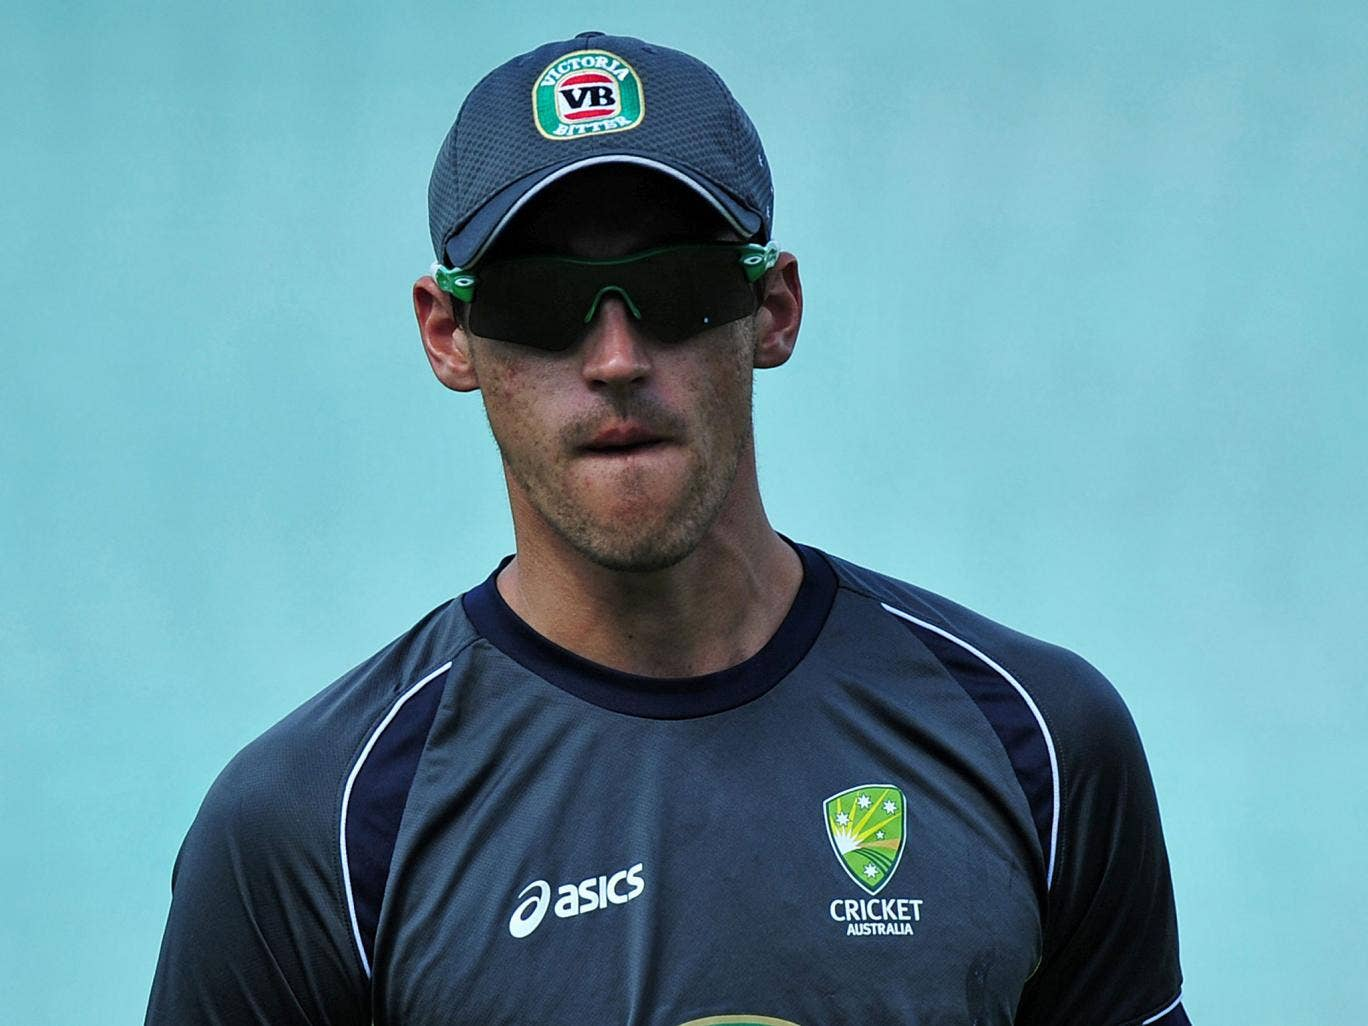 Mitchell Starc: The fast bowler was recalled by Australia for the second time in the Ashes series